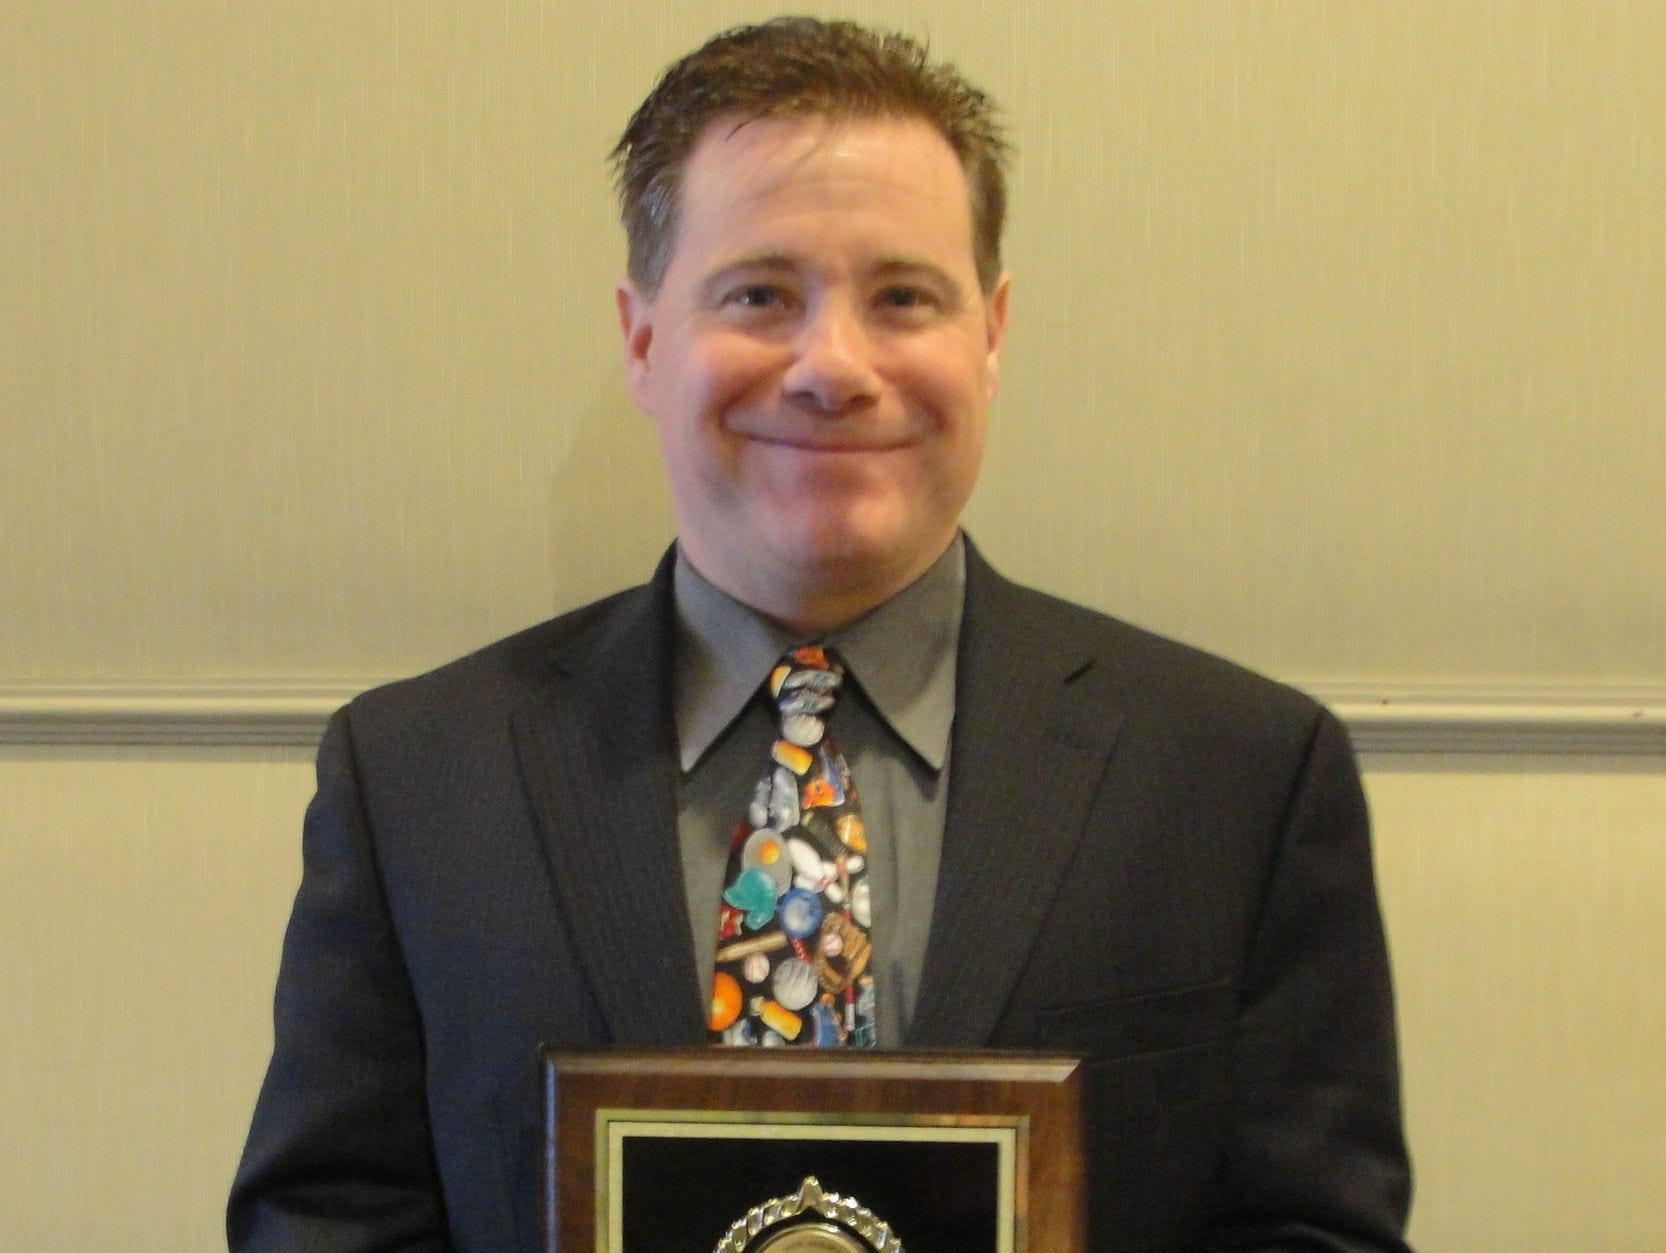 Thomas Moran was inducted into the New Jersey Scholastic Coaches Association Hall of Fame for his coaching contribution in volleyball and softball at Mother Seton Regional High School in Clark.